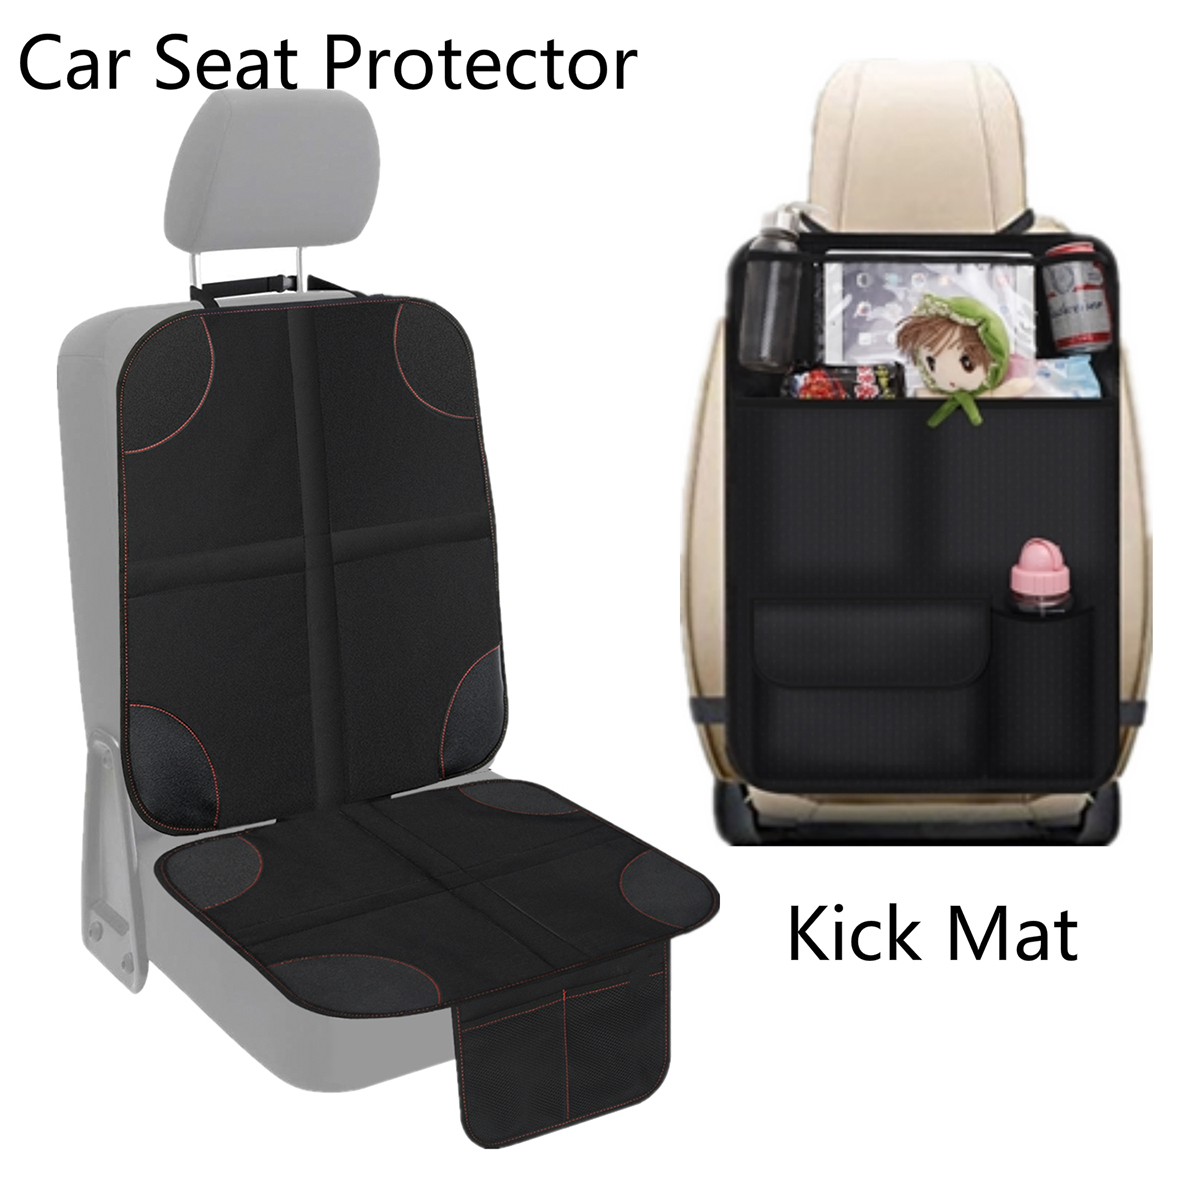 Car Seat Protector + Kick Mat Baby Travel Kick Mat & Seat Cover Waterproof  Rear Seat Organizer Storage Pockets